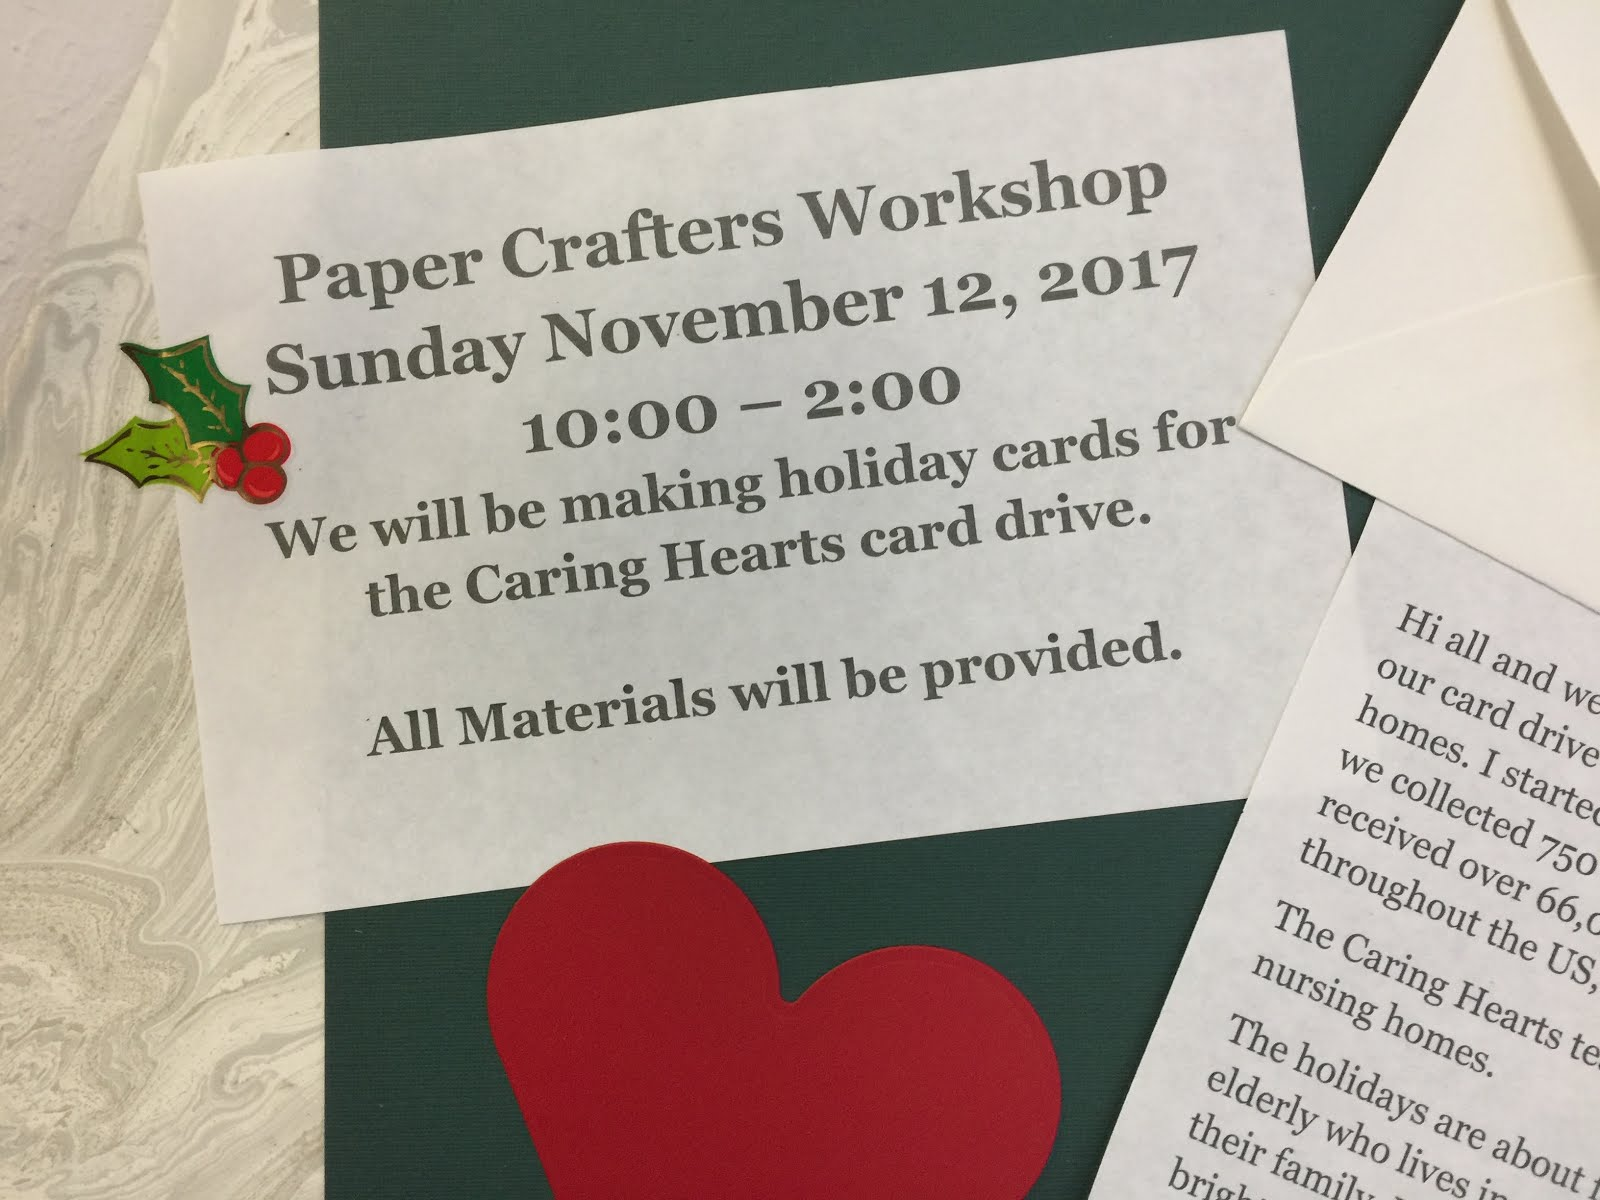 Paper Crafters Workshop